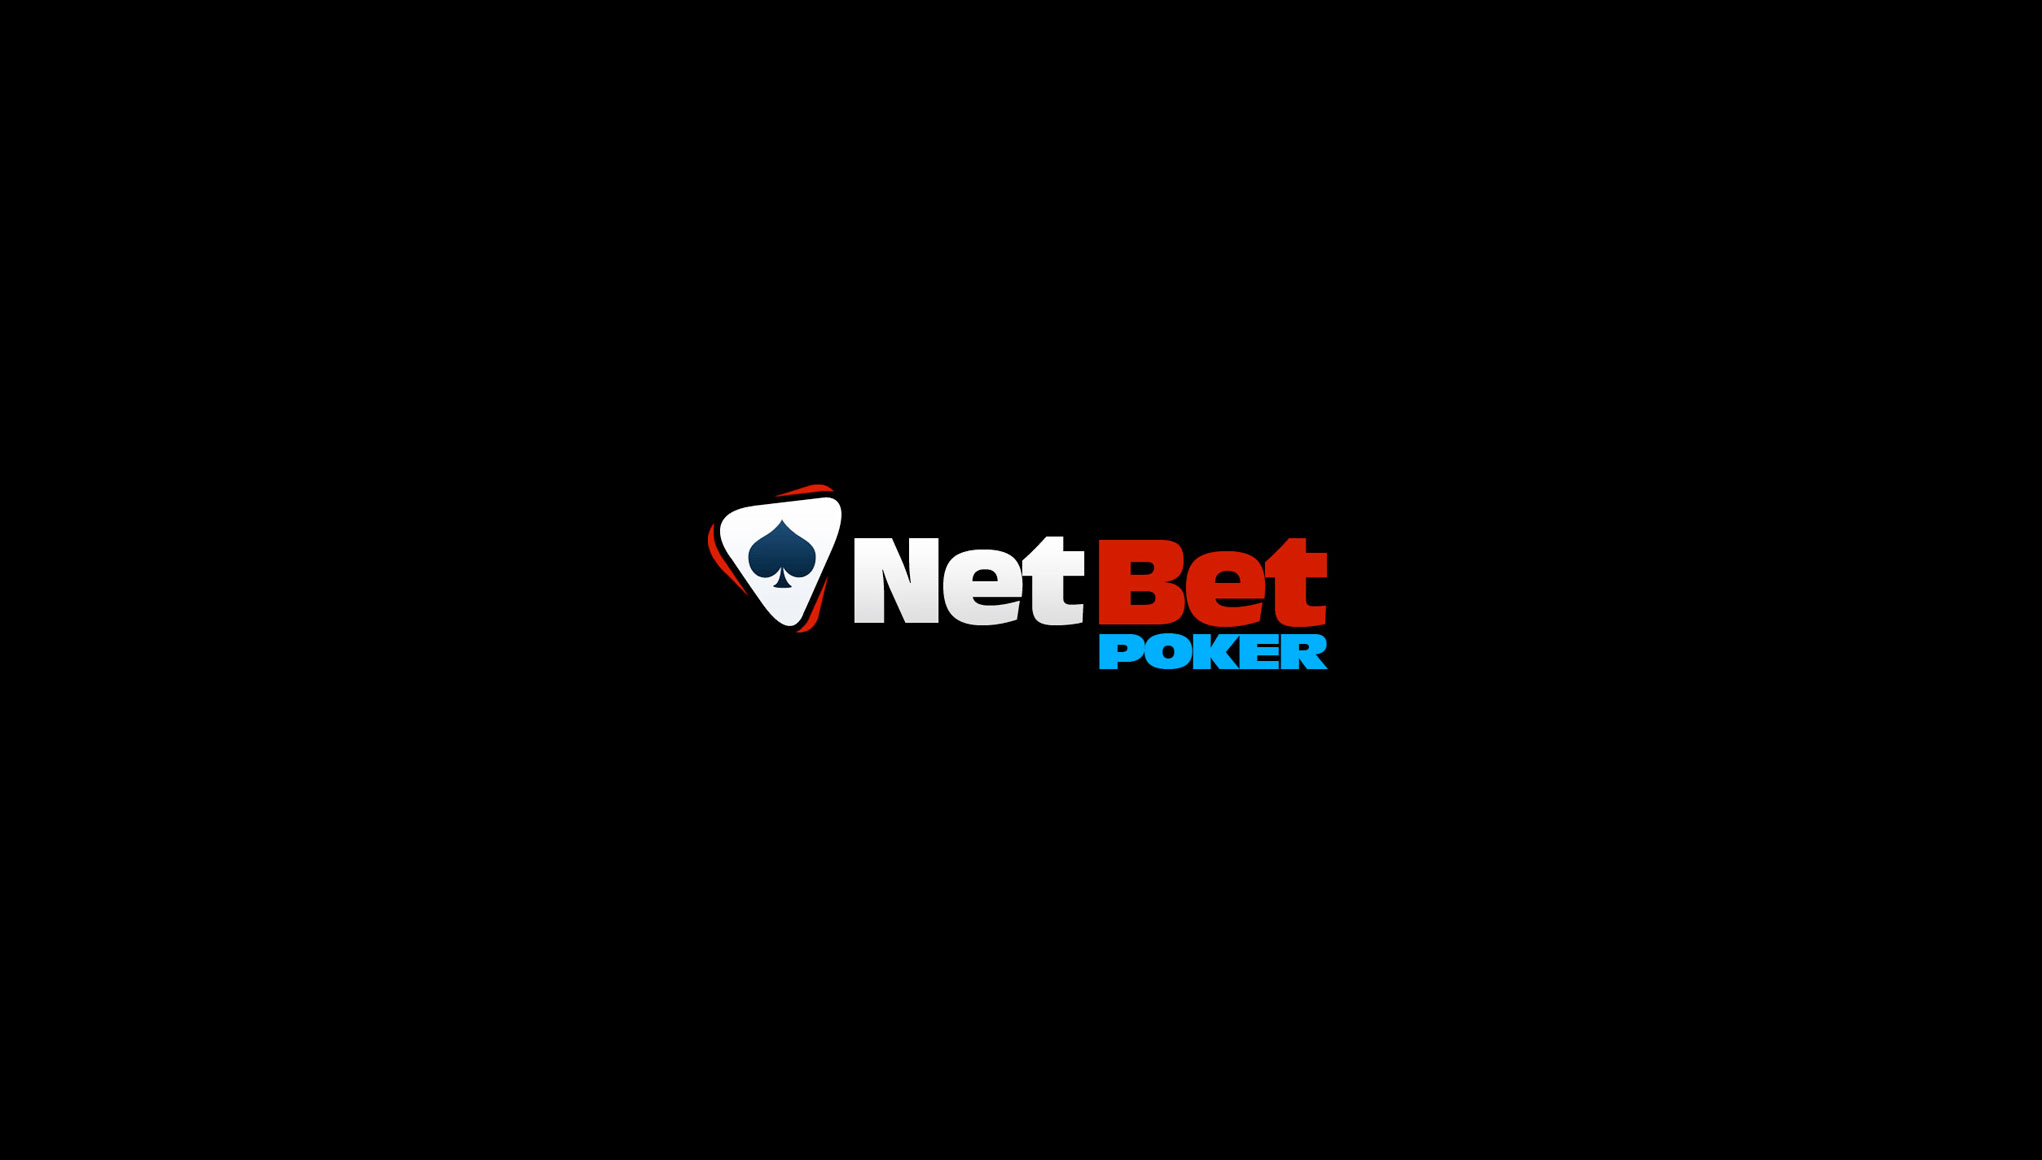 NetBet Poker Review